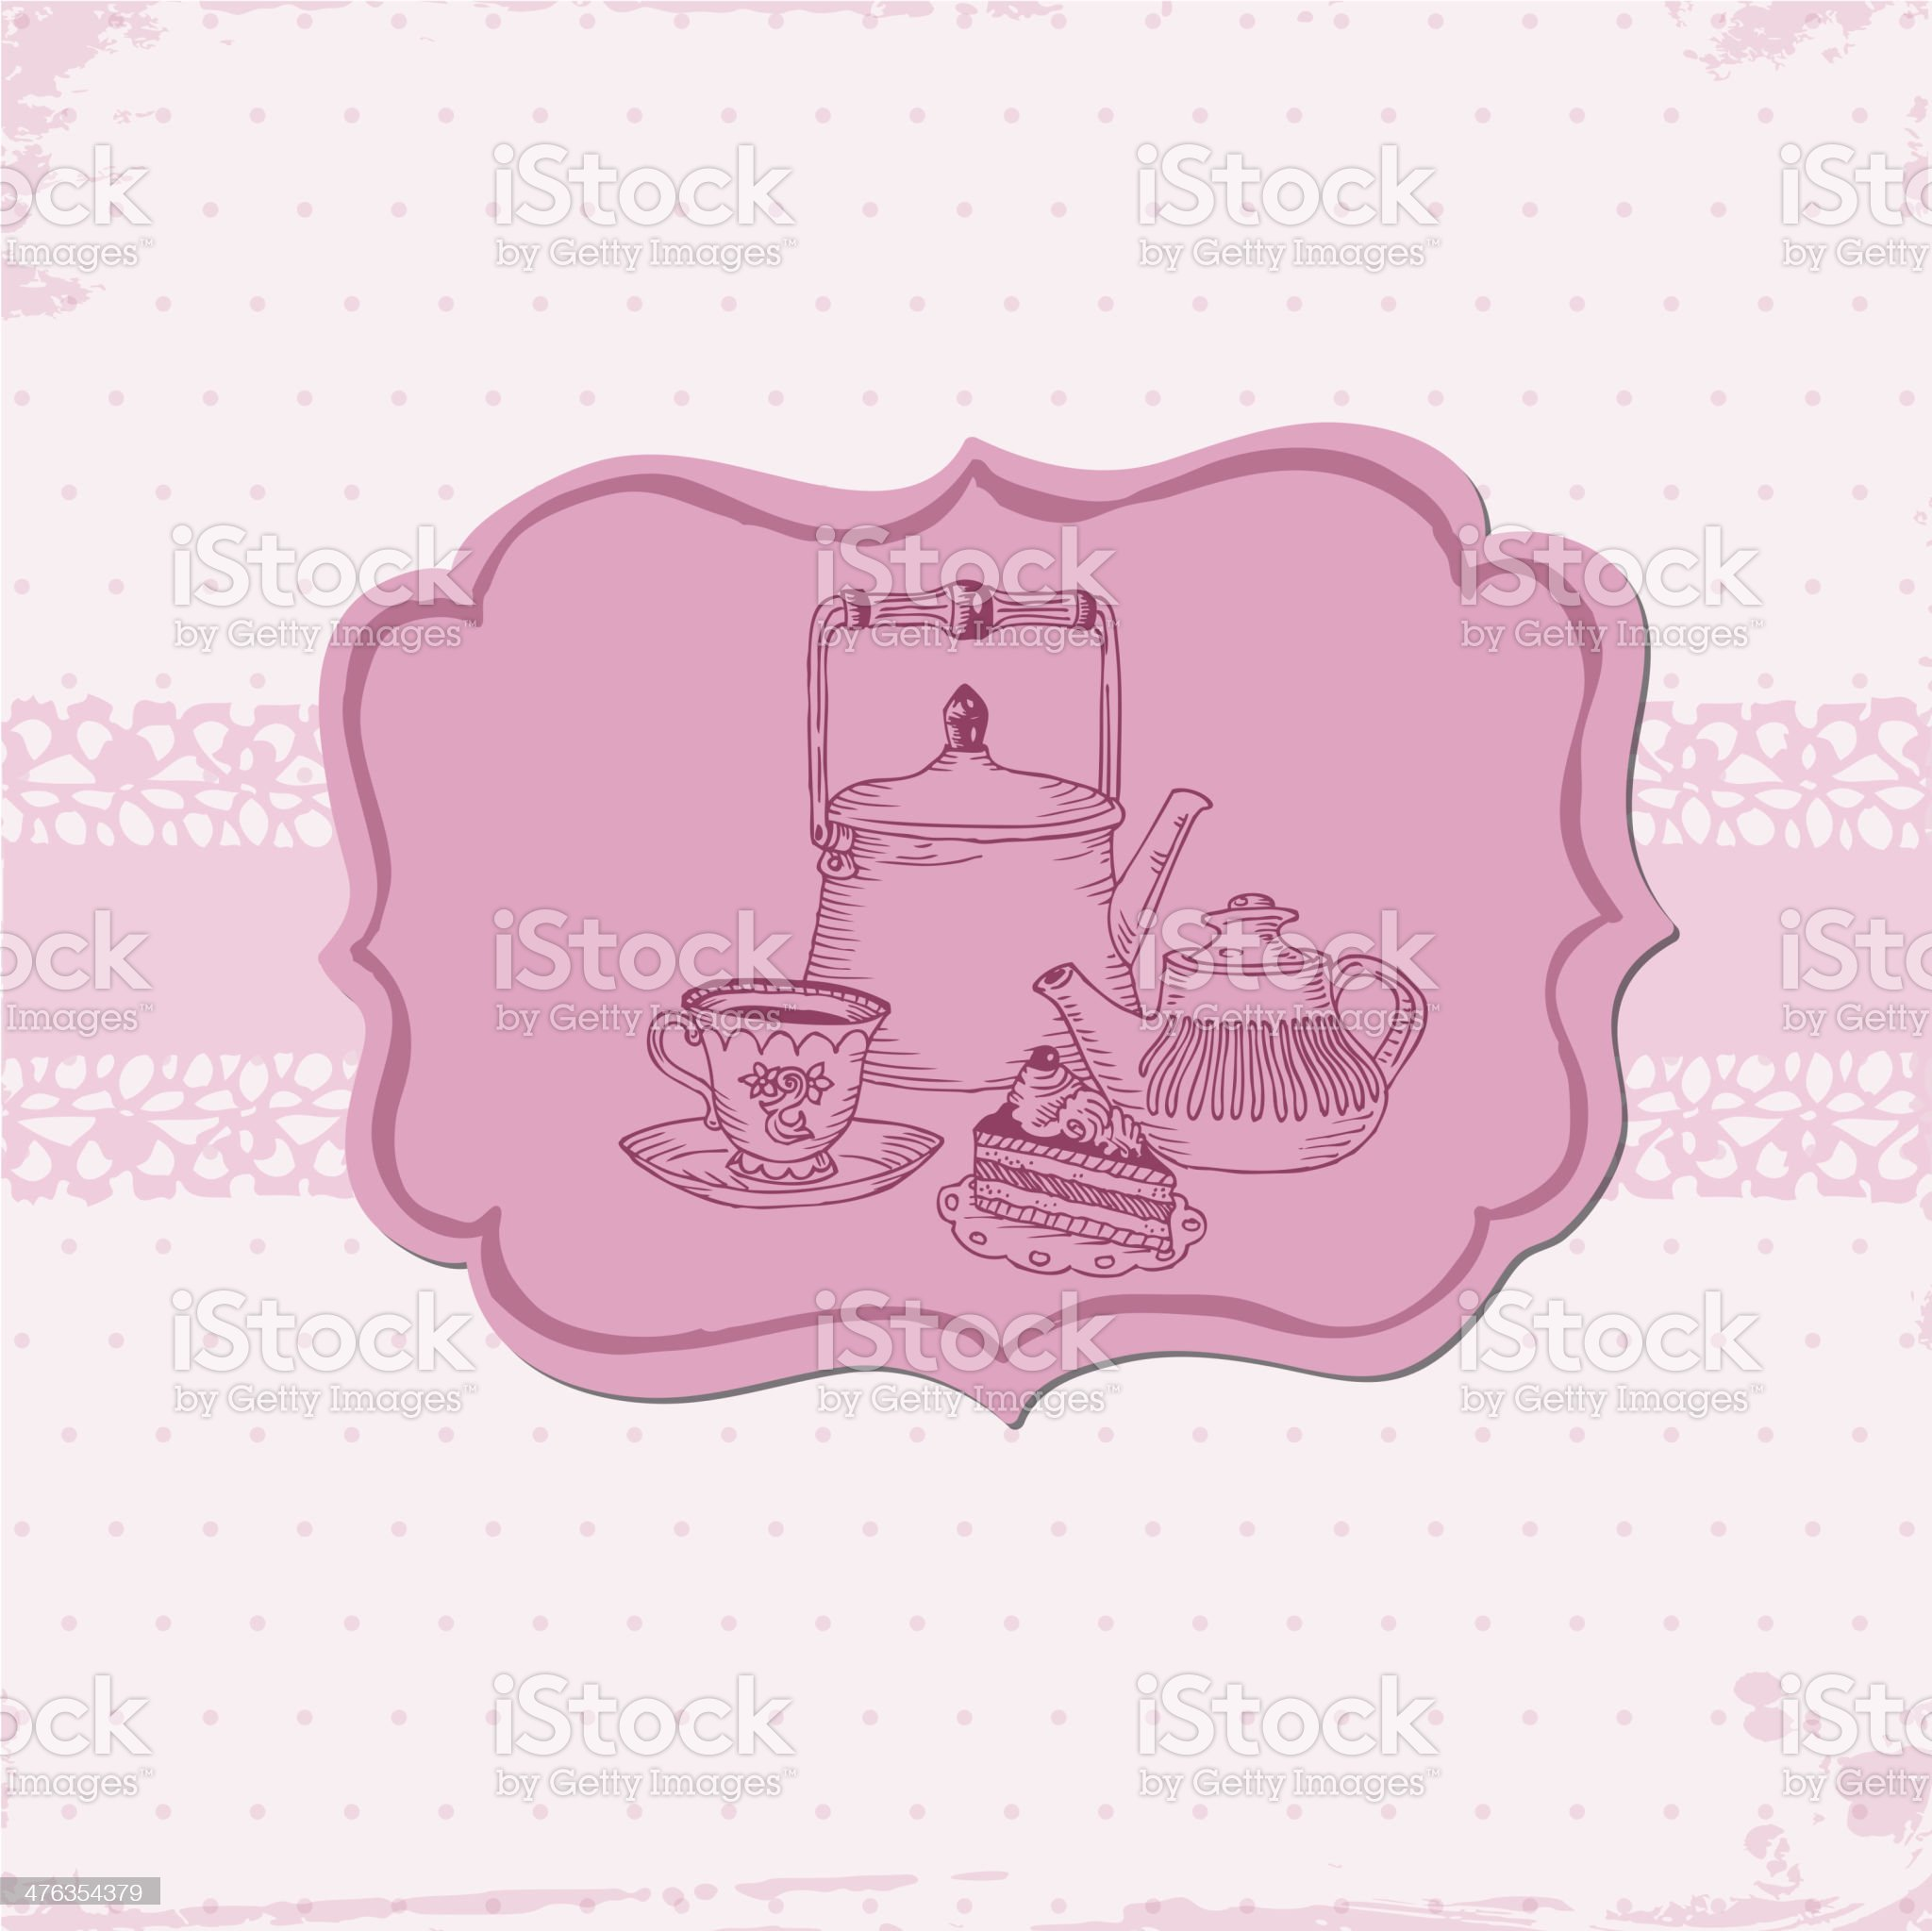 Doodled Desserts & Tea Card royalty-free stock vector art